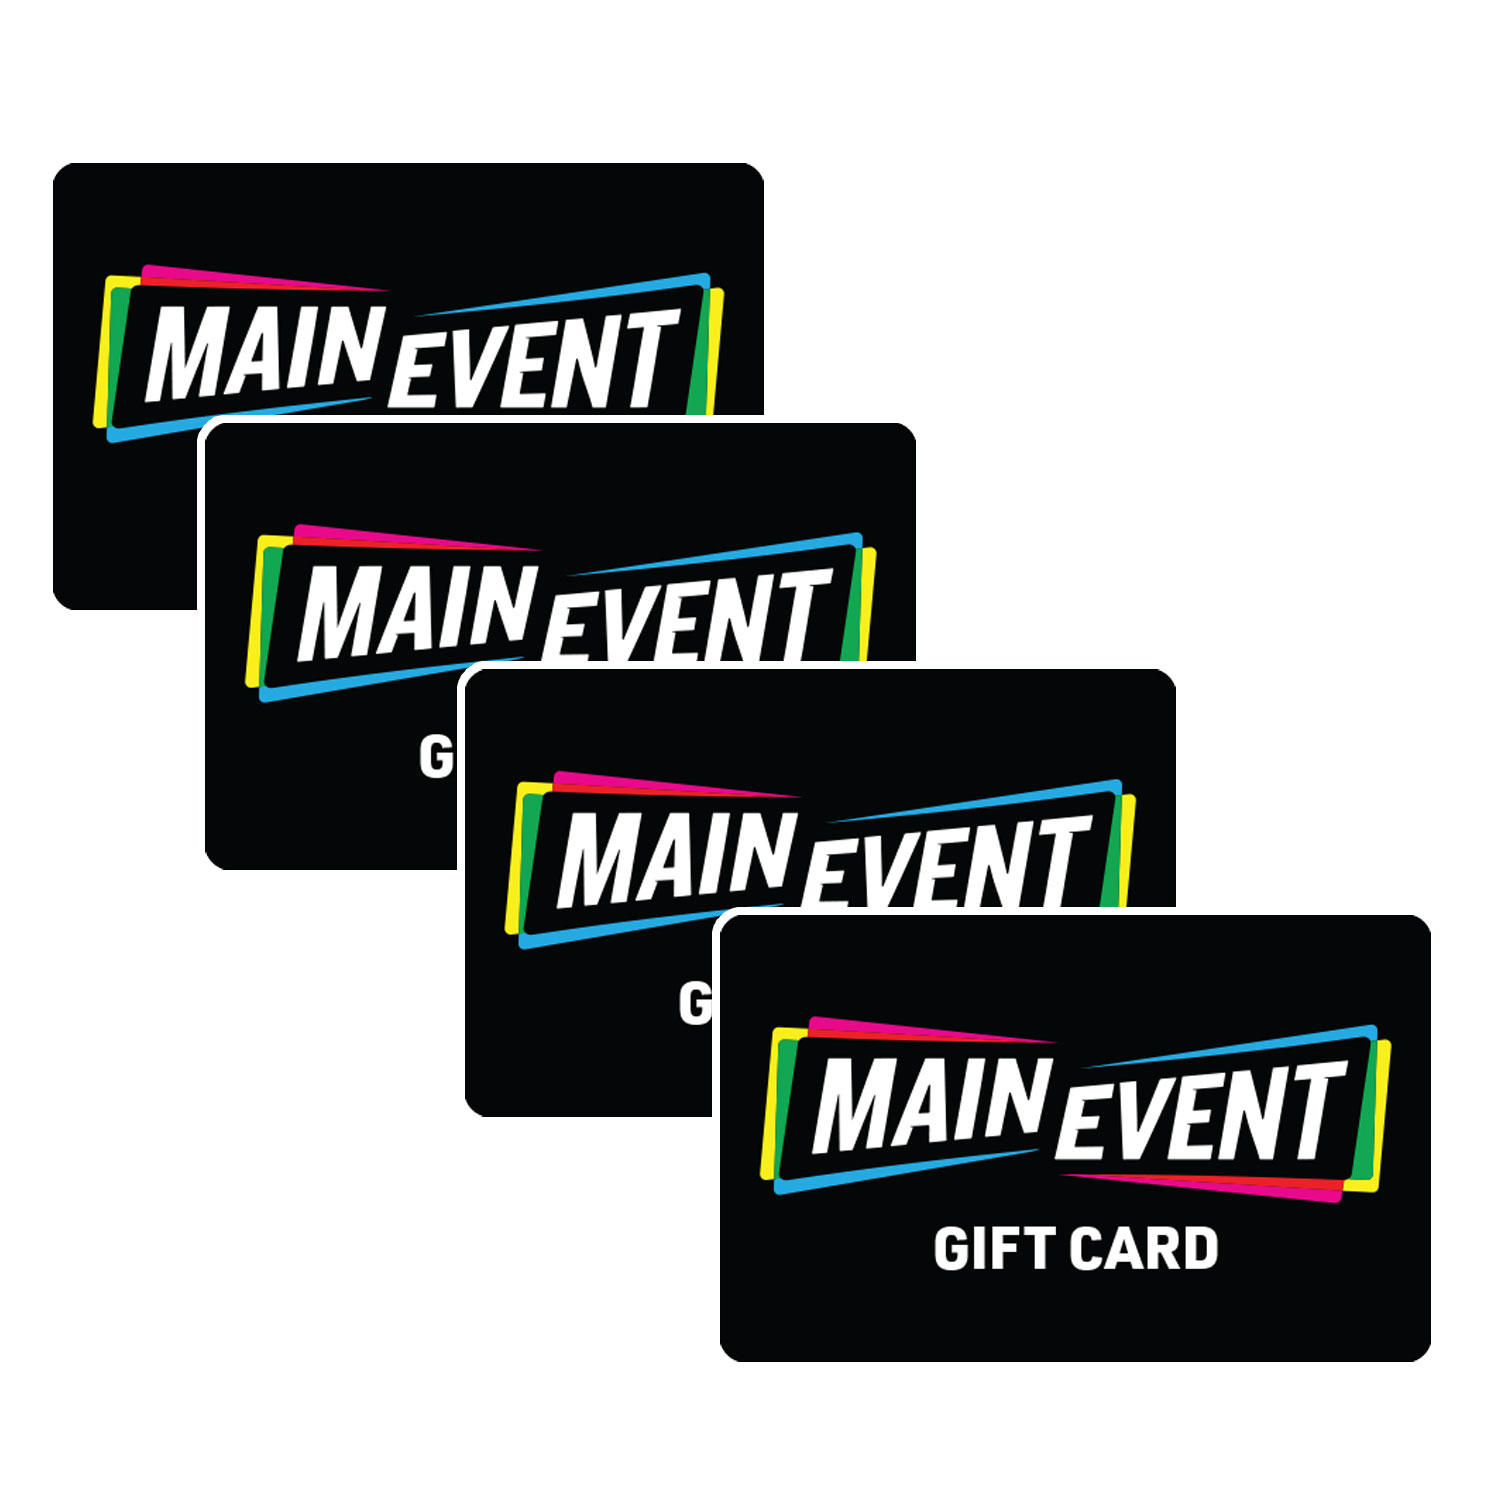 $100 (4 x $25) Main Event Gift Cards